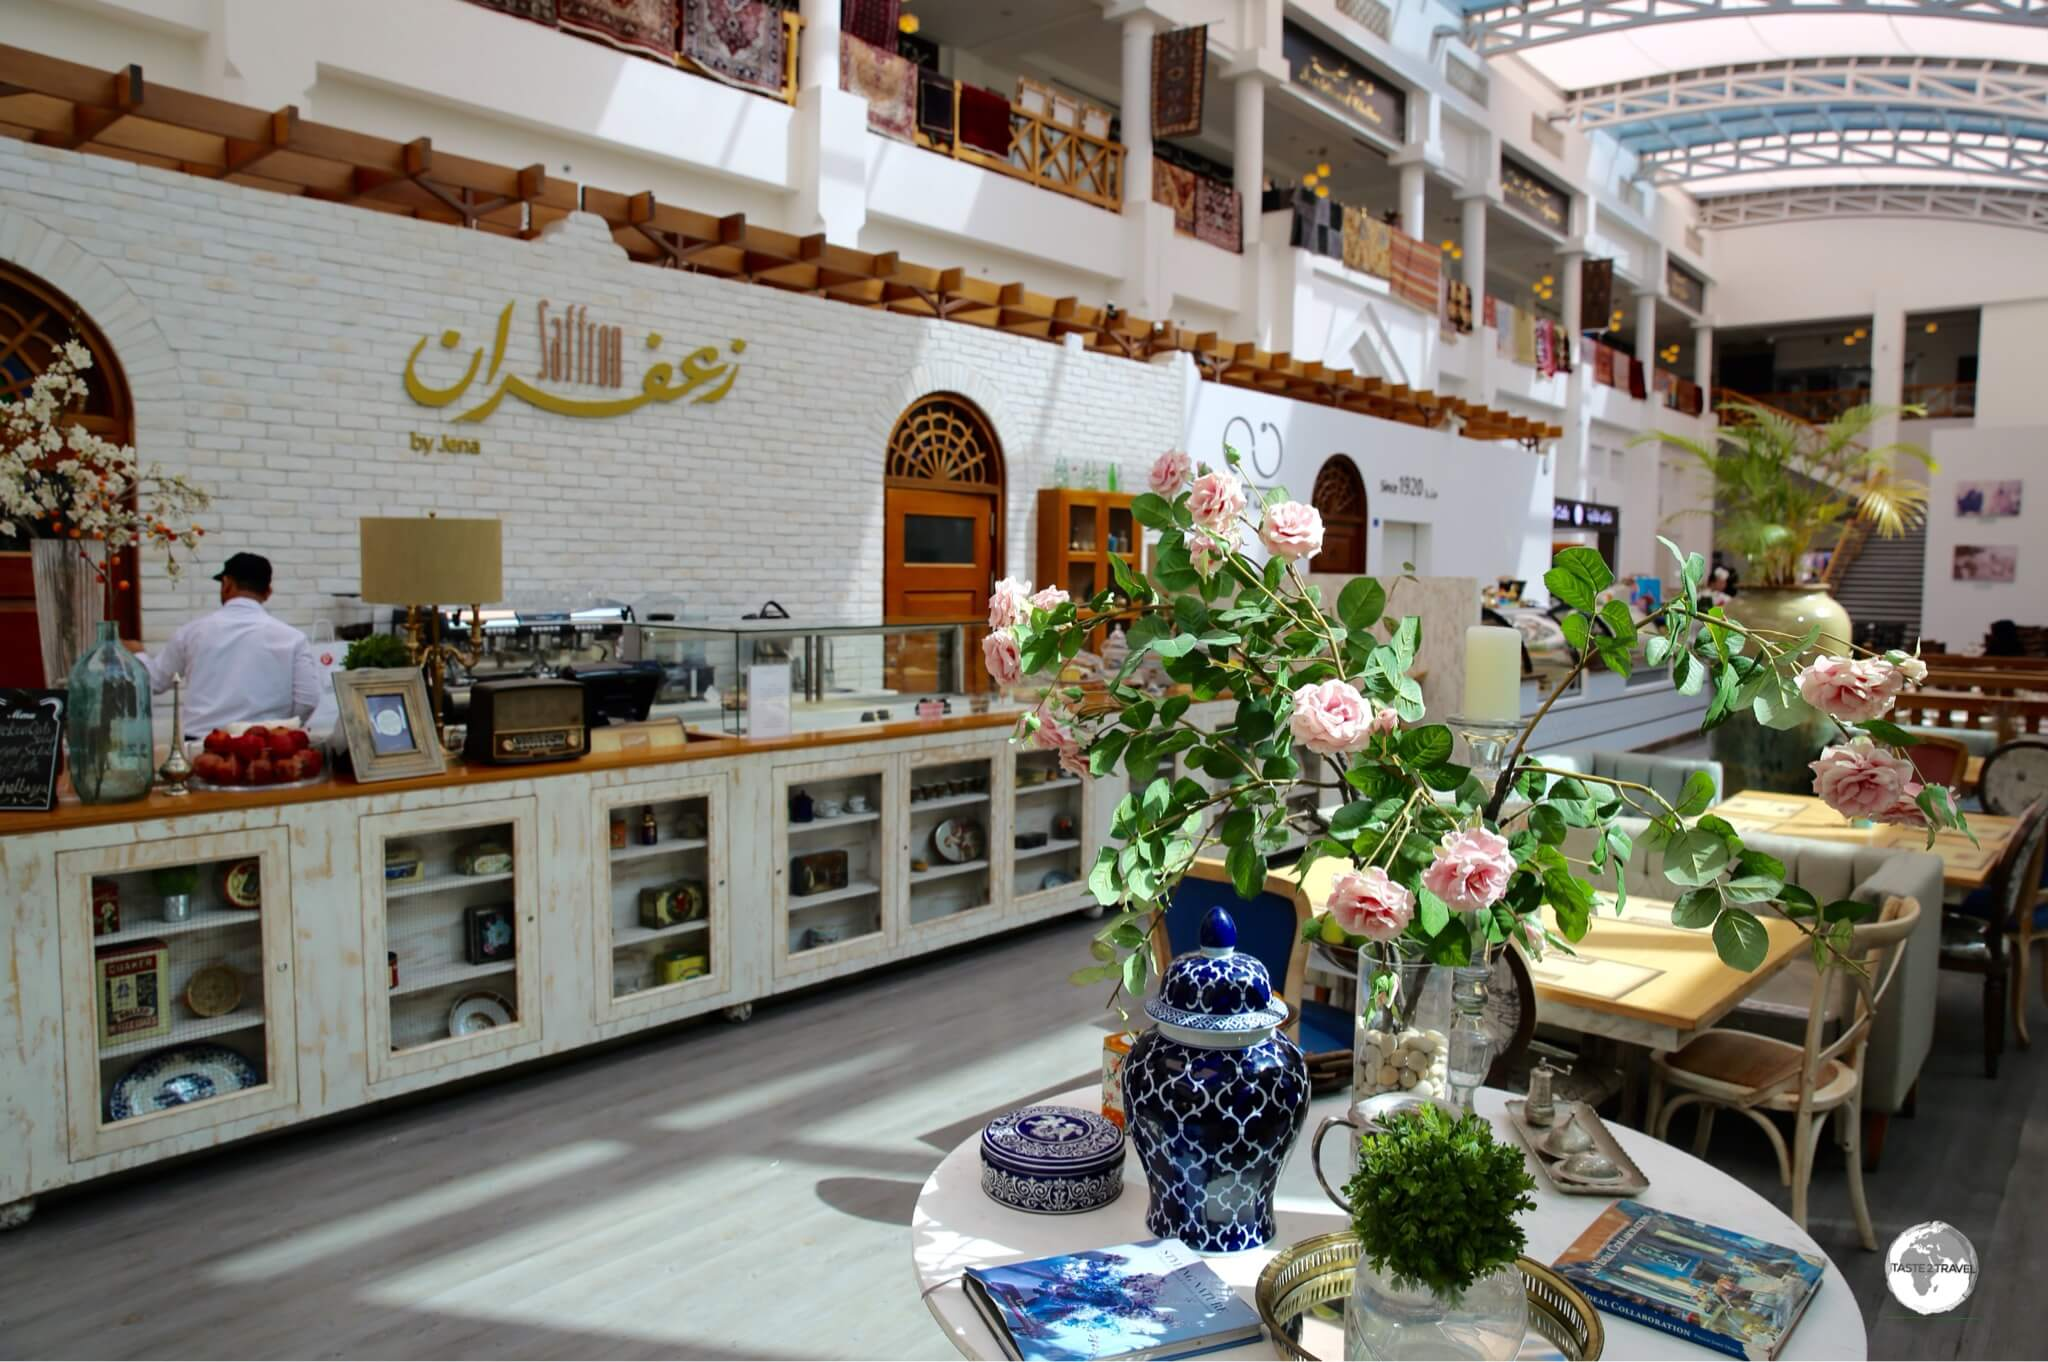 'Saffron by Jena' offers superb local cuisine at their Bab Al Bahrain Mall branch.